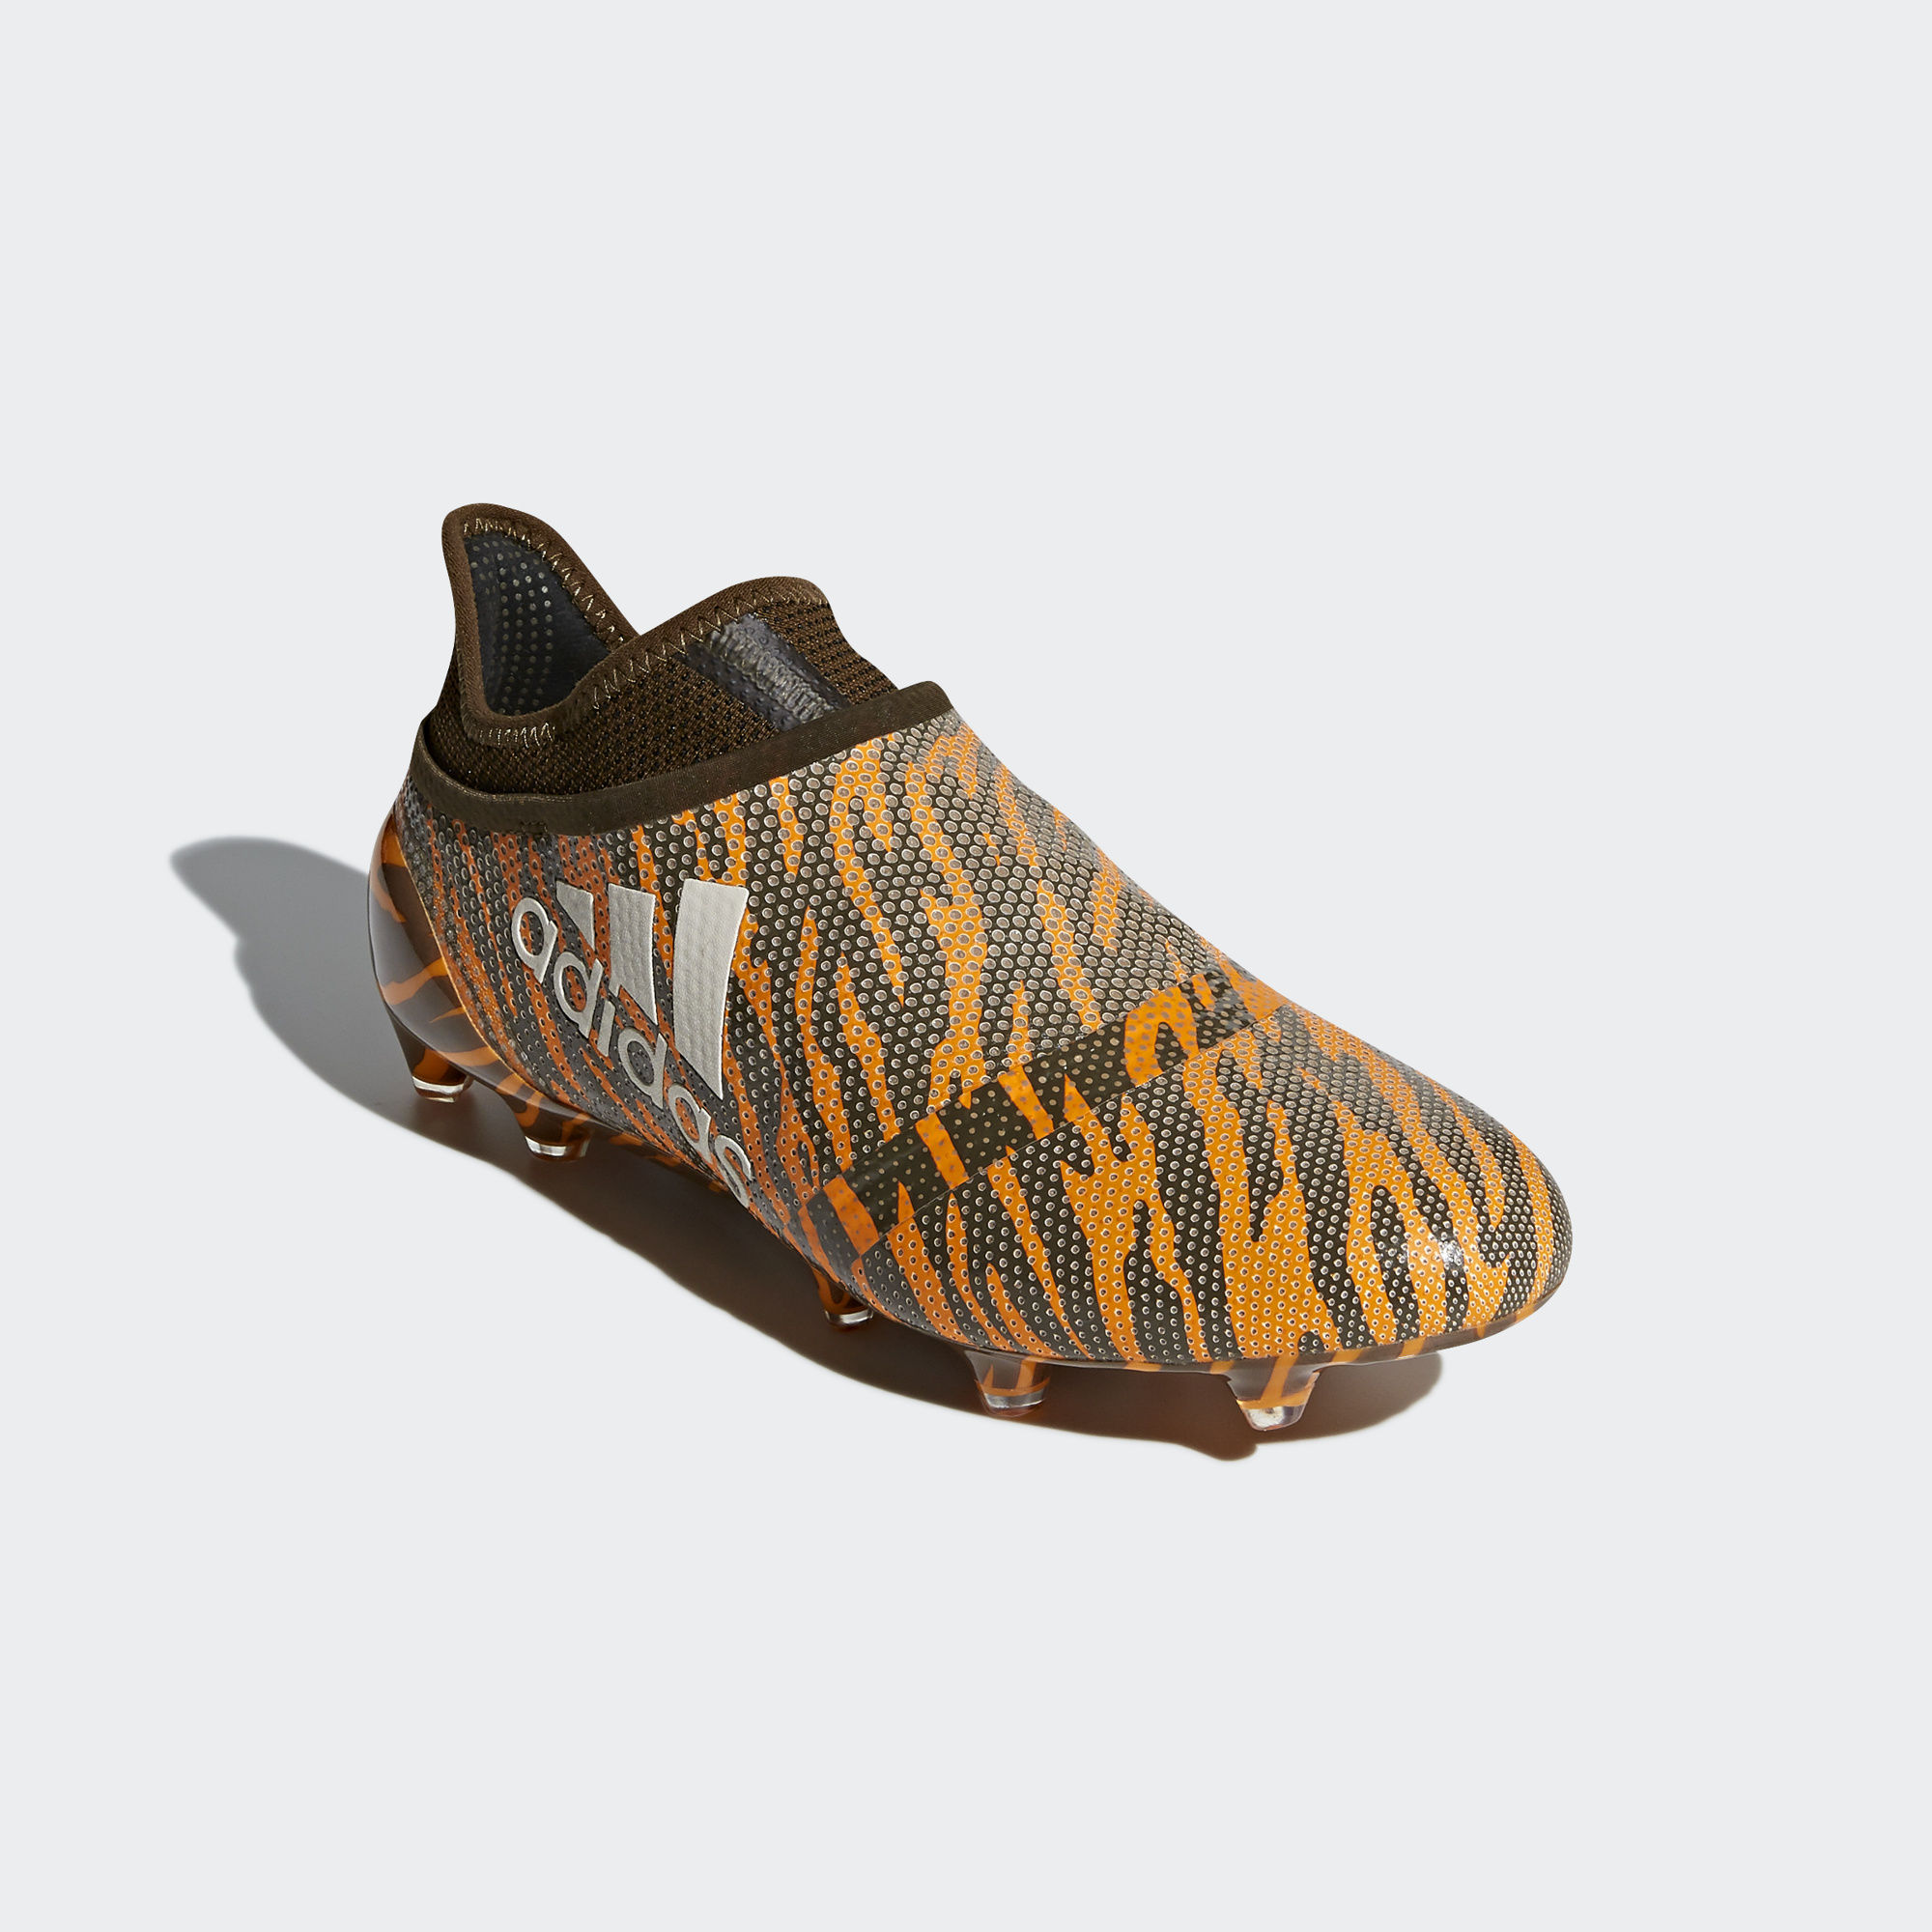 hot sale online cf2e0 2a53b ... Click to enlarge image  adidas x 17 purespeed lone hunter fg bright orange talc trace olive d.jpg  ...